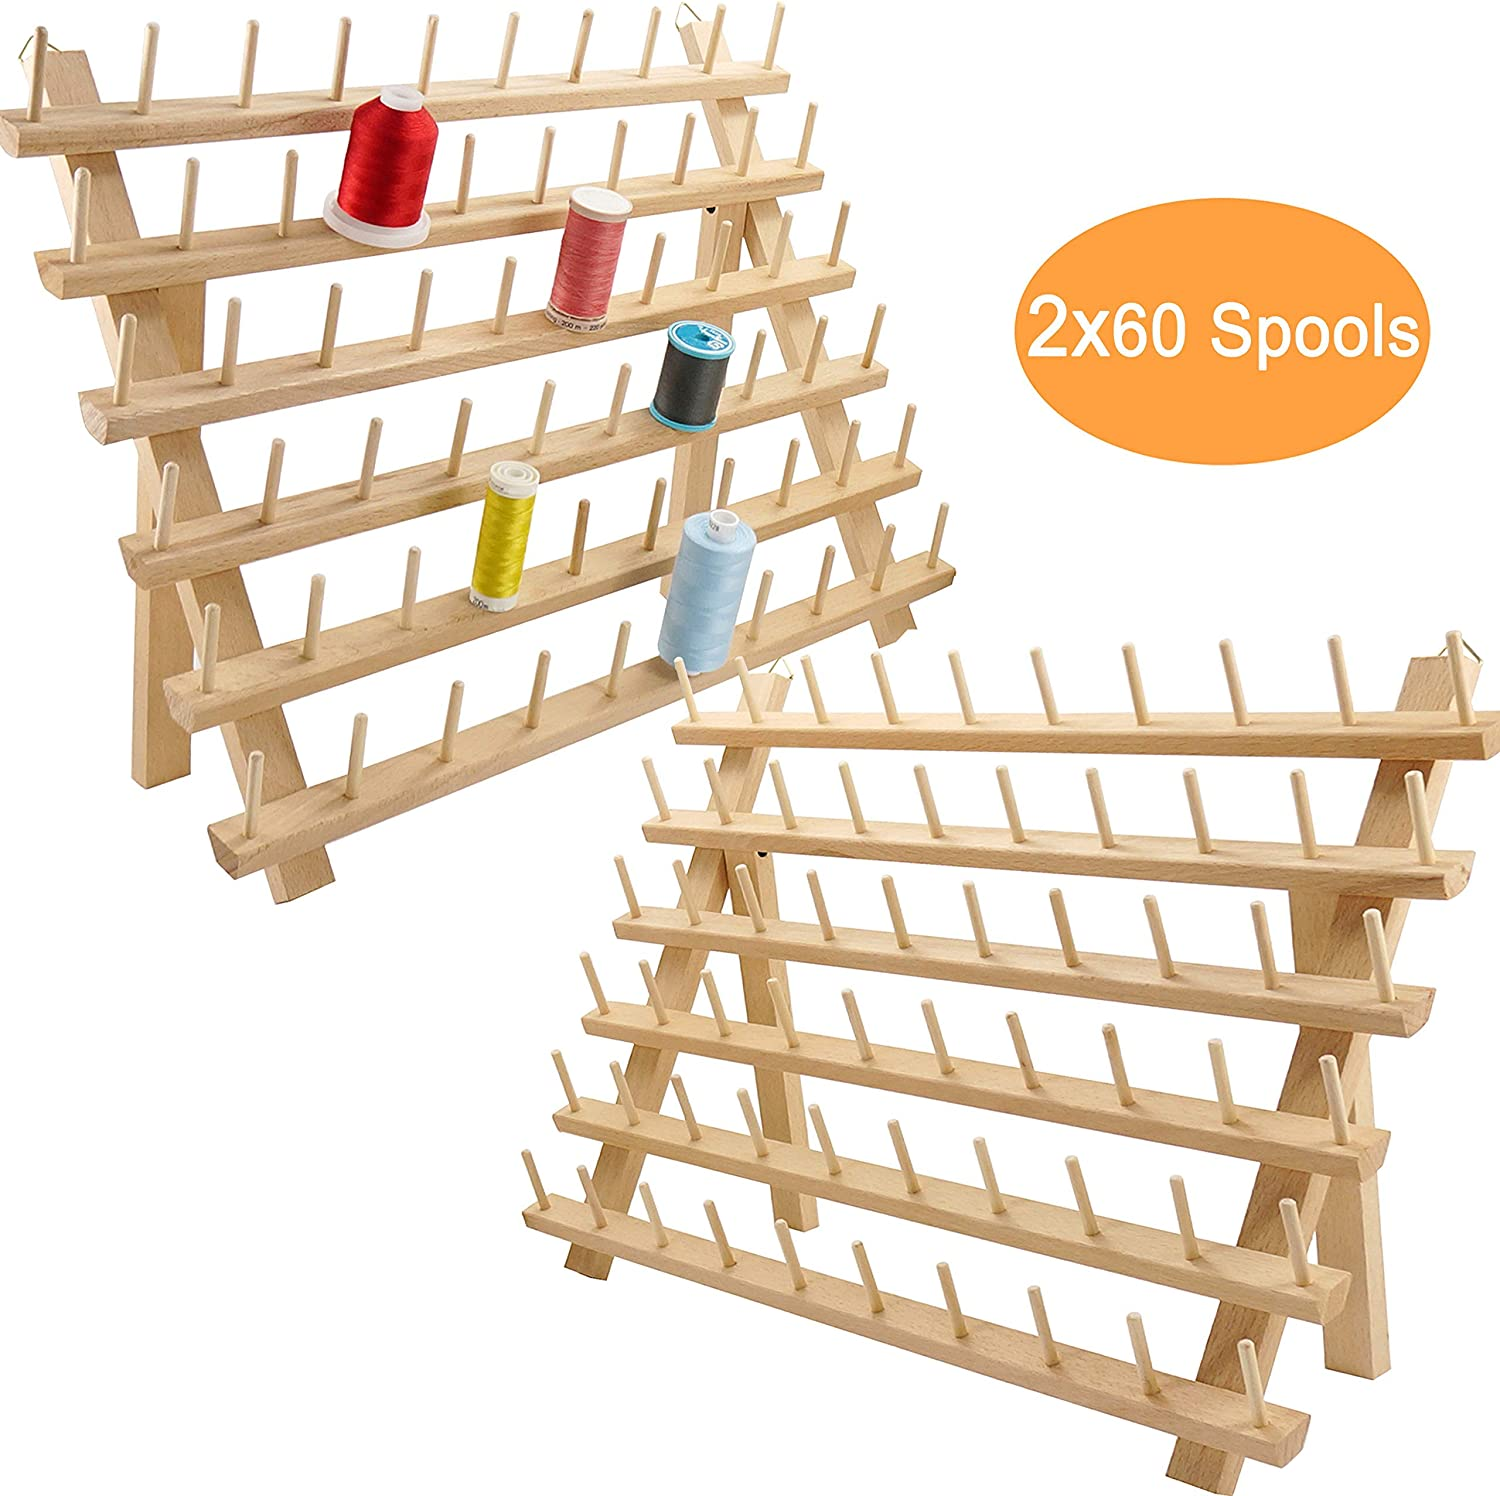 Renewed New Brothread 2X60 Spools Wooden Thread Rack//Thread Holder Organizer with Hanging Hooks for Embroidery Quilting and Sewing Threads